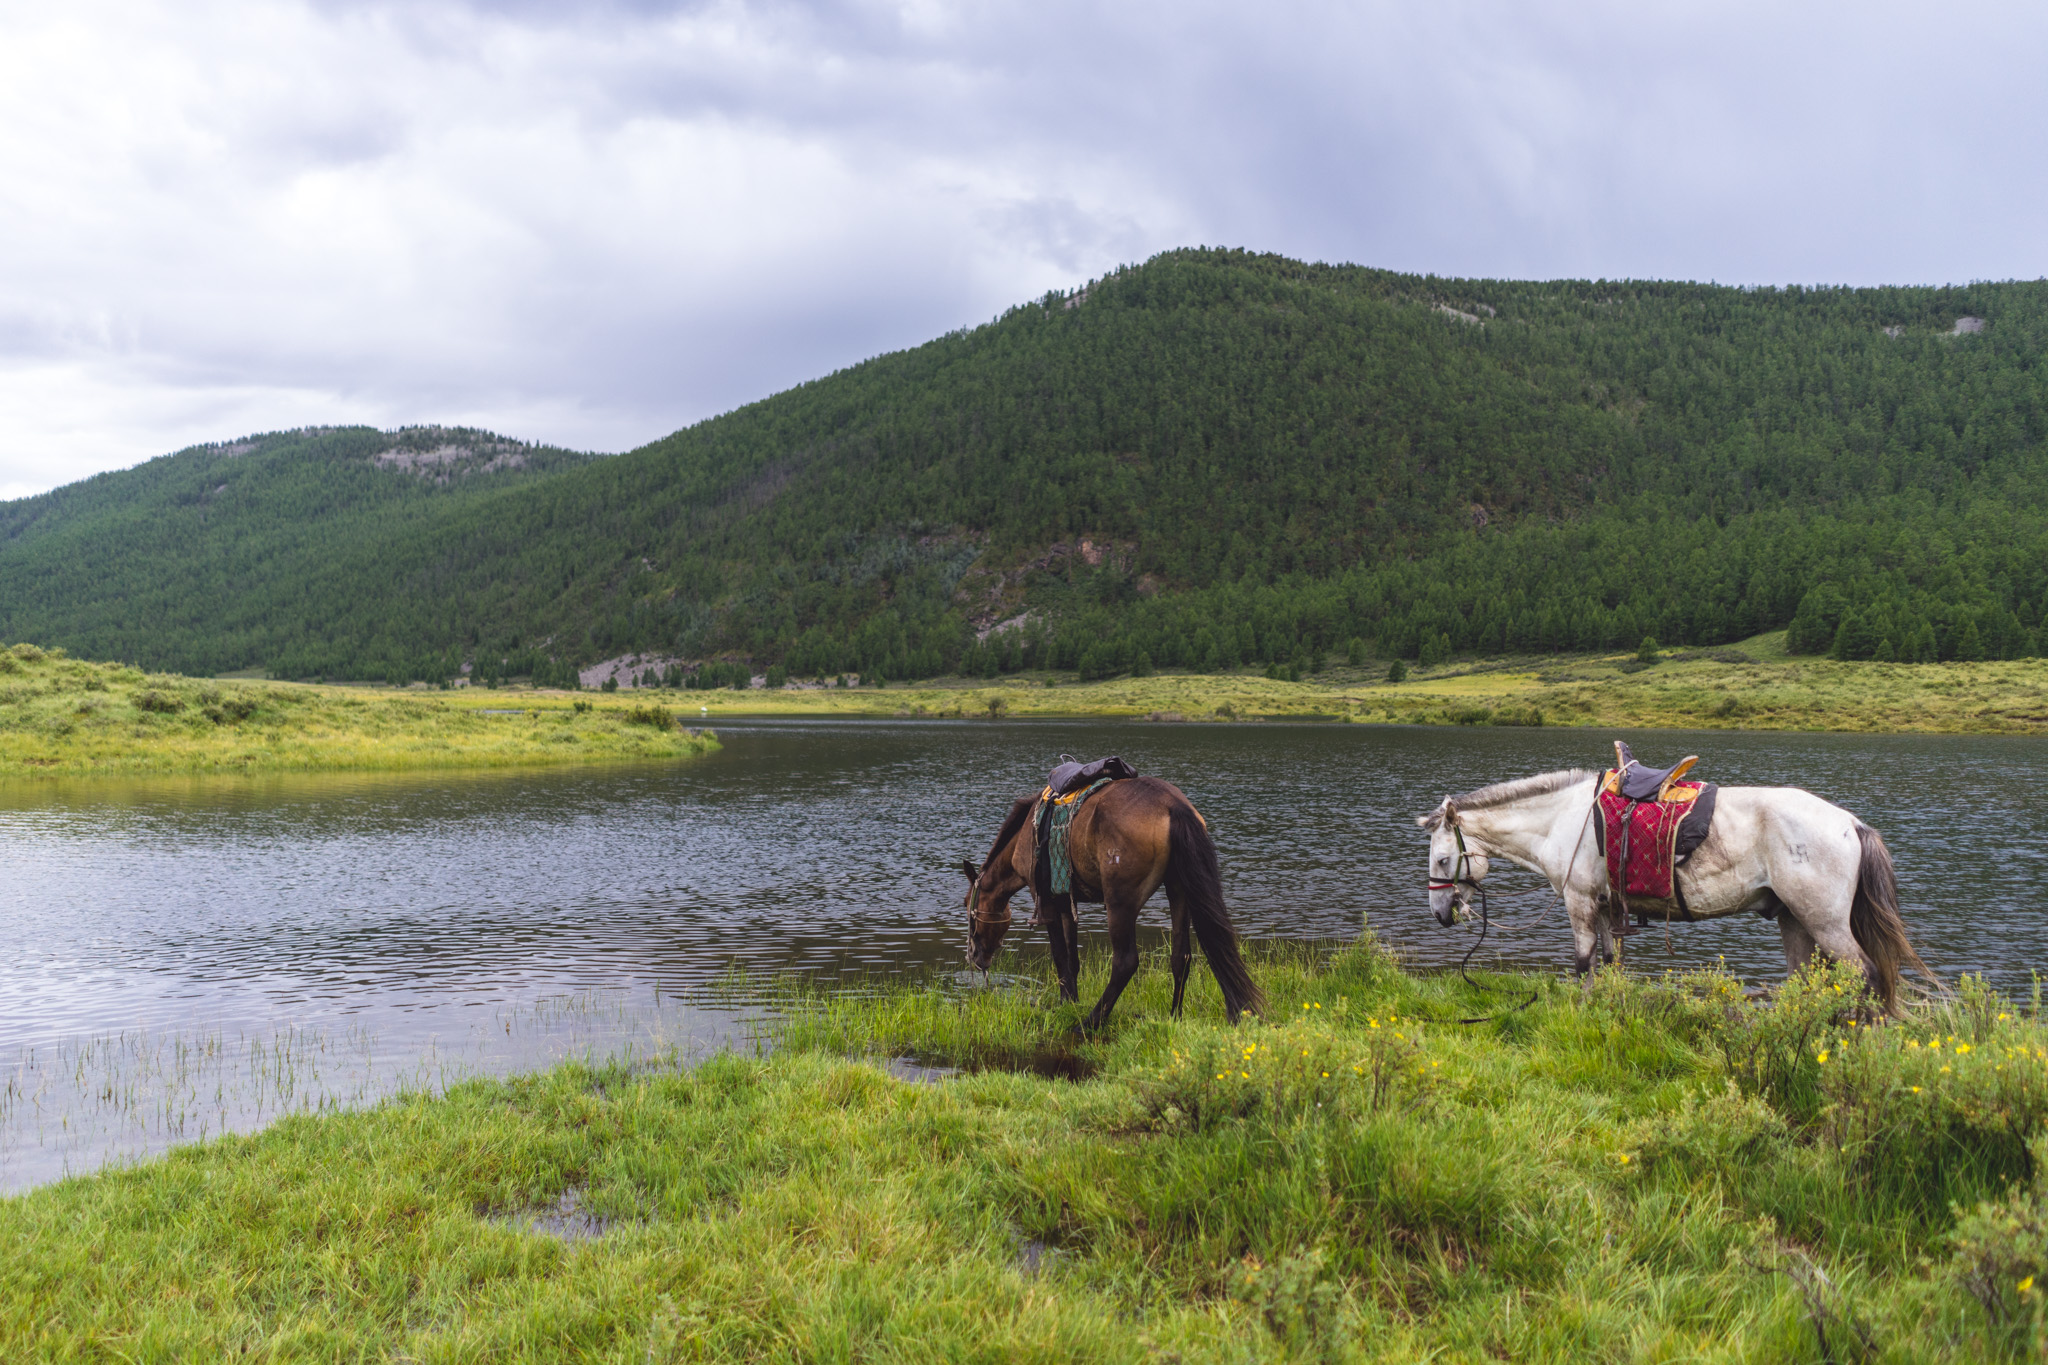 Quick water break while horseback riding in Mongolia's Orkhon Valley